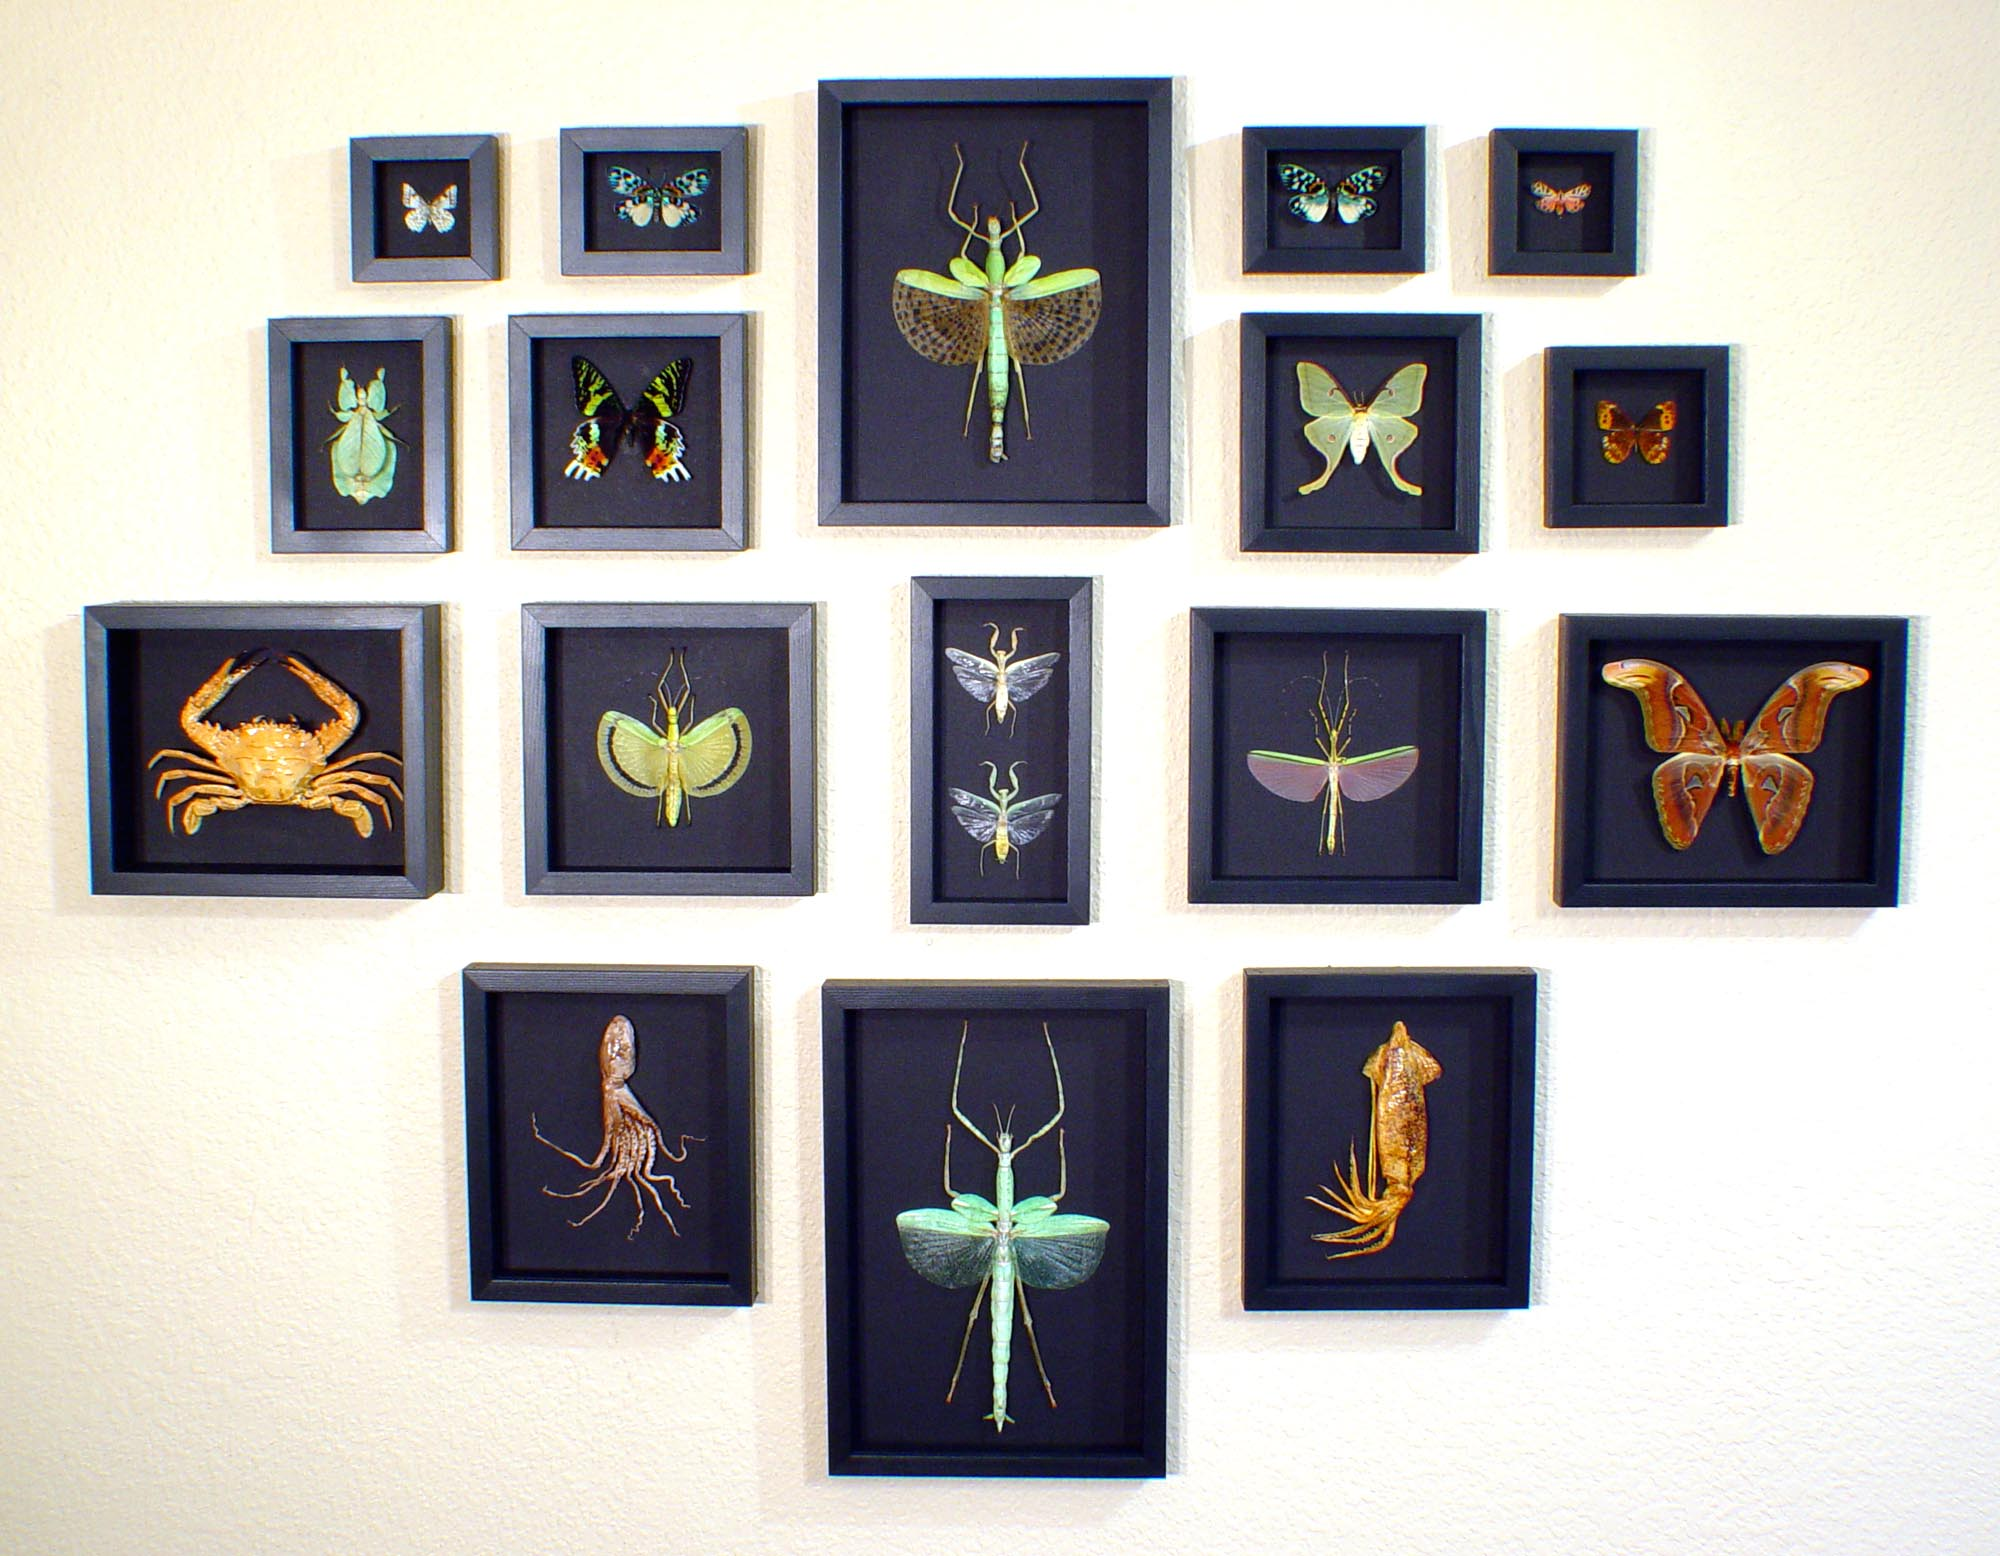 Moonlight-Displays real framed butterfly-displays framed butterflies by butterfly-designs